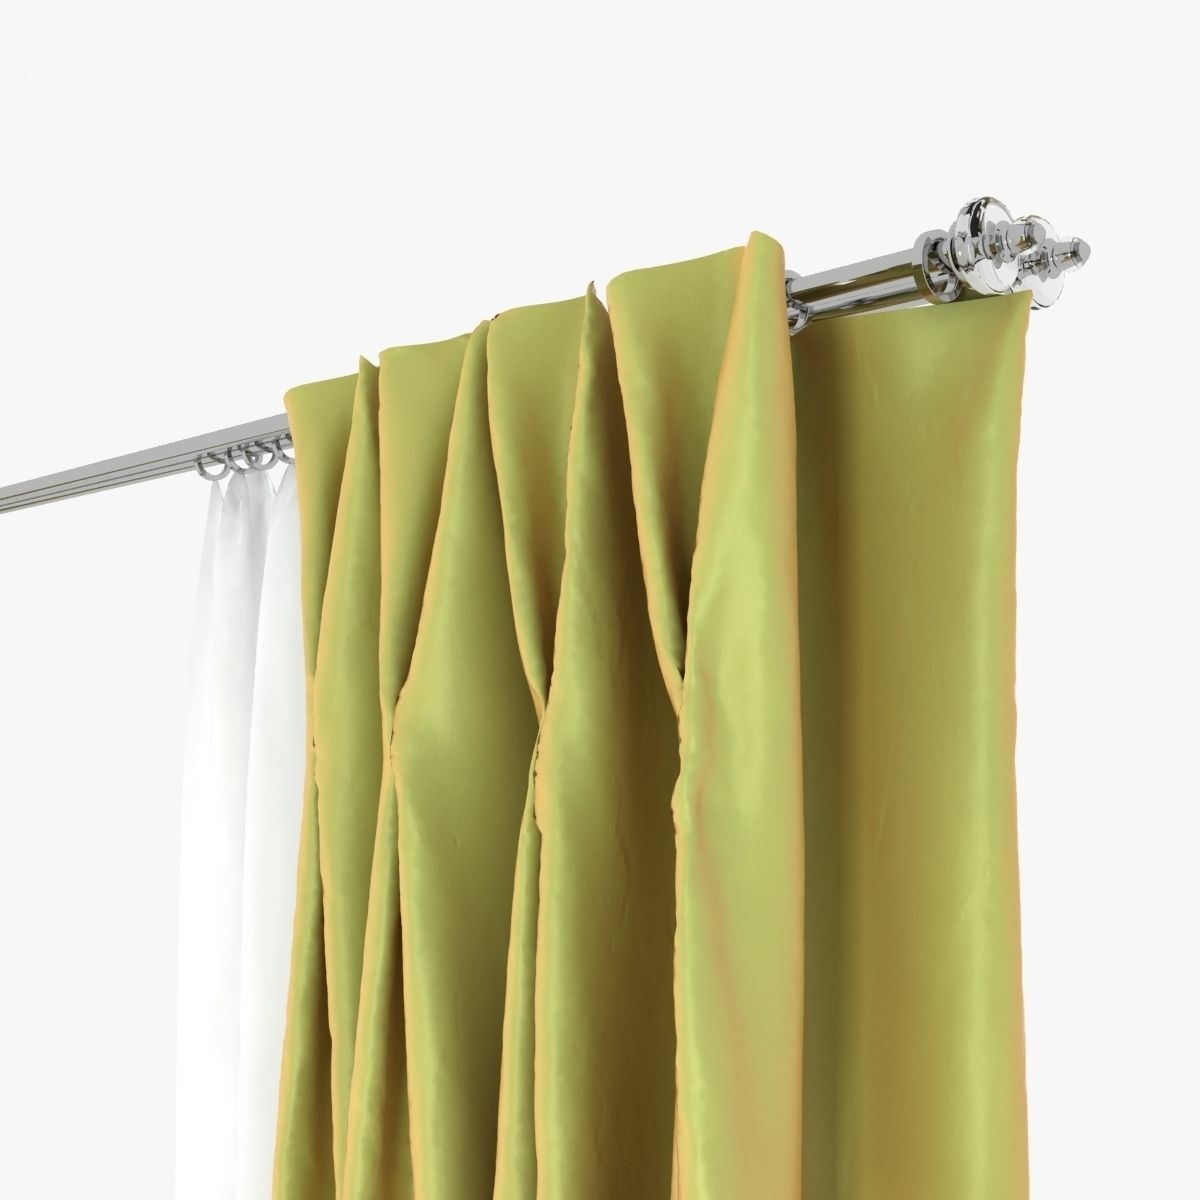 Double Pinch Pleat Curtains 3d Model Max Obj Fbx Mtl Inside Double Pinch Pleat Curtains (Image 4 of 15)